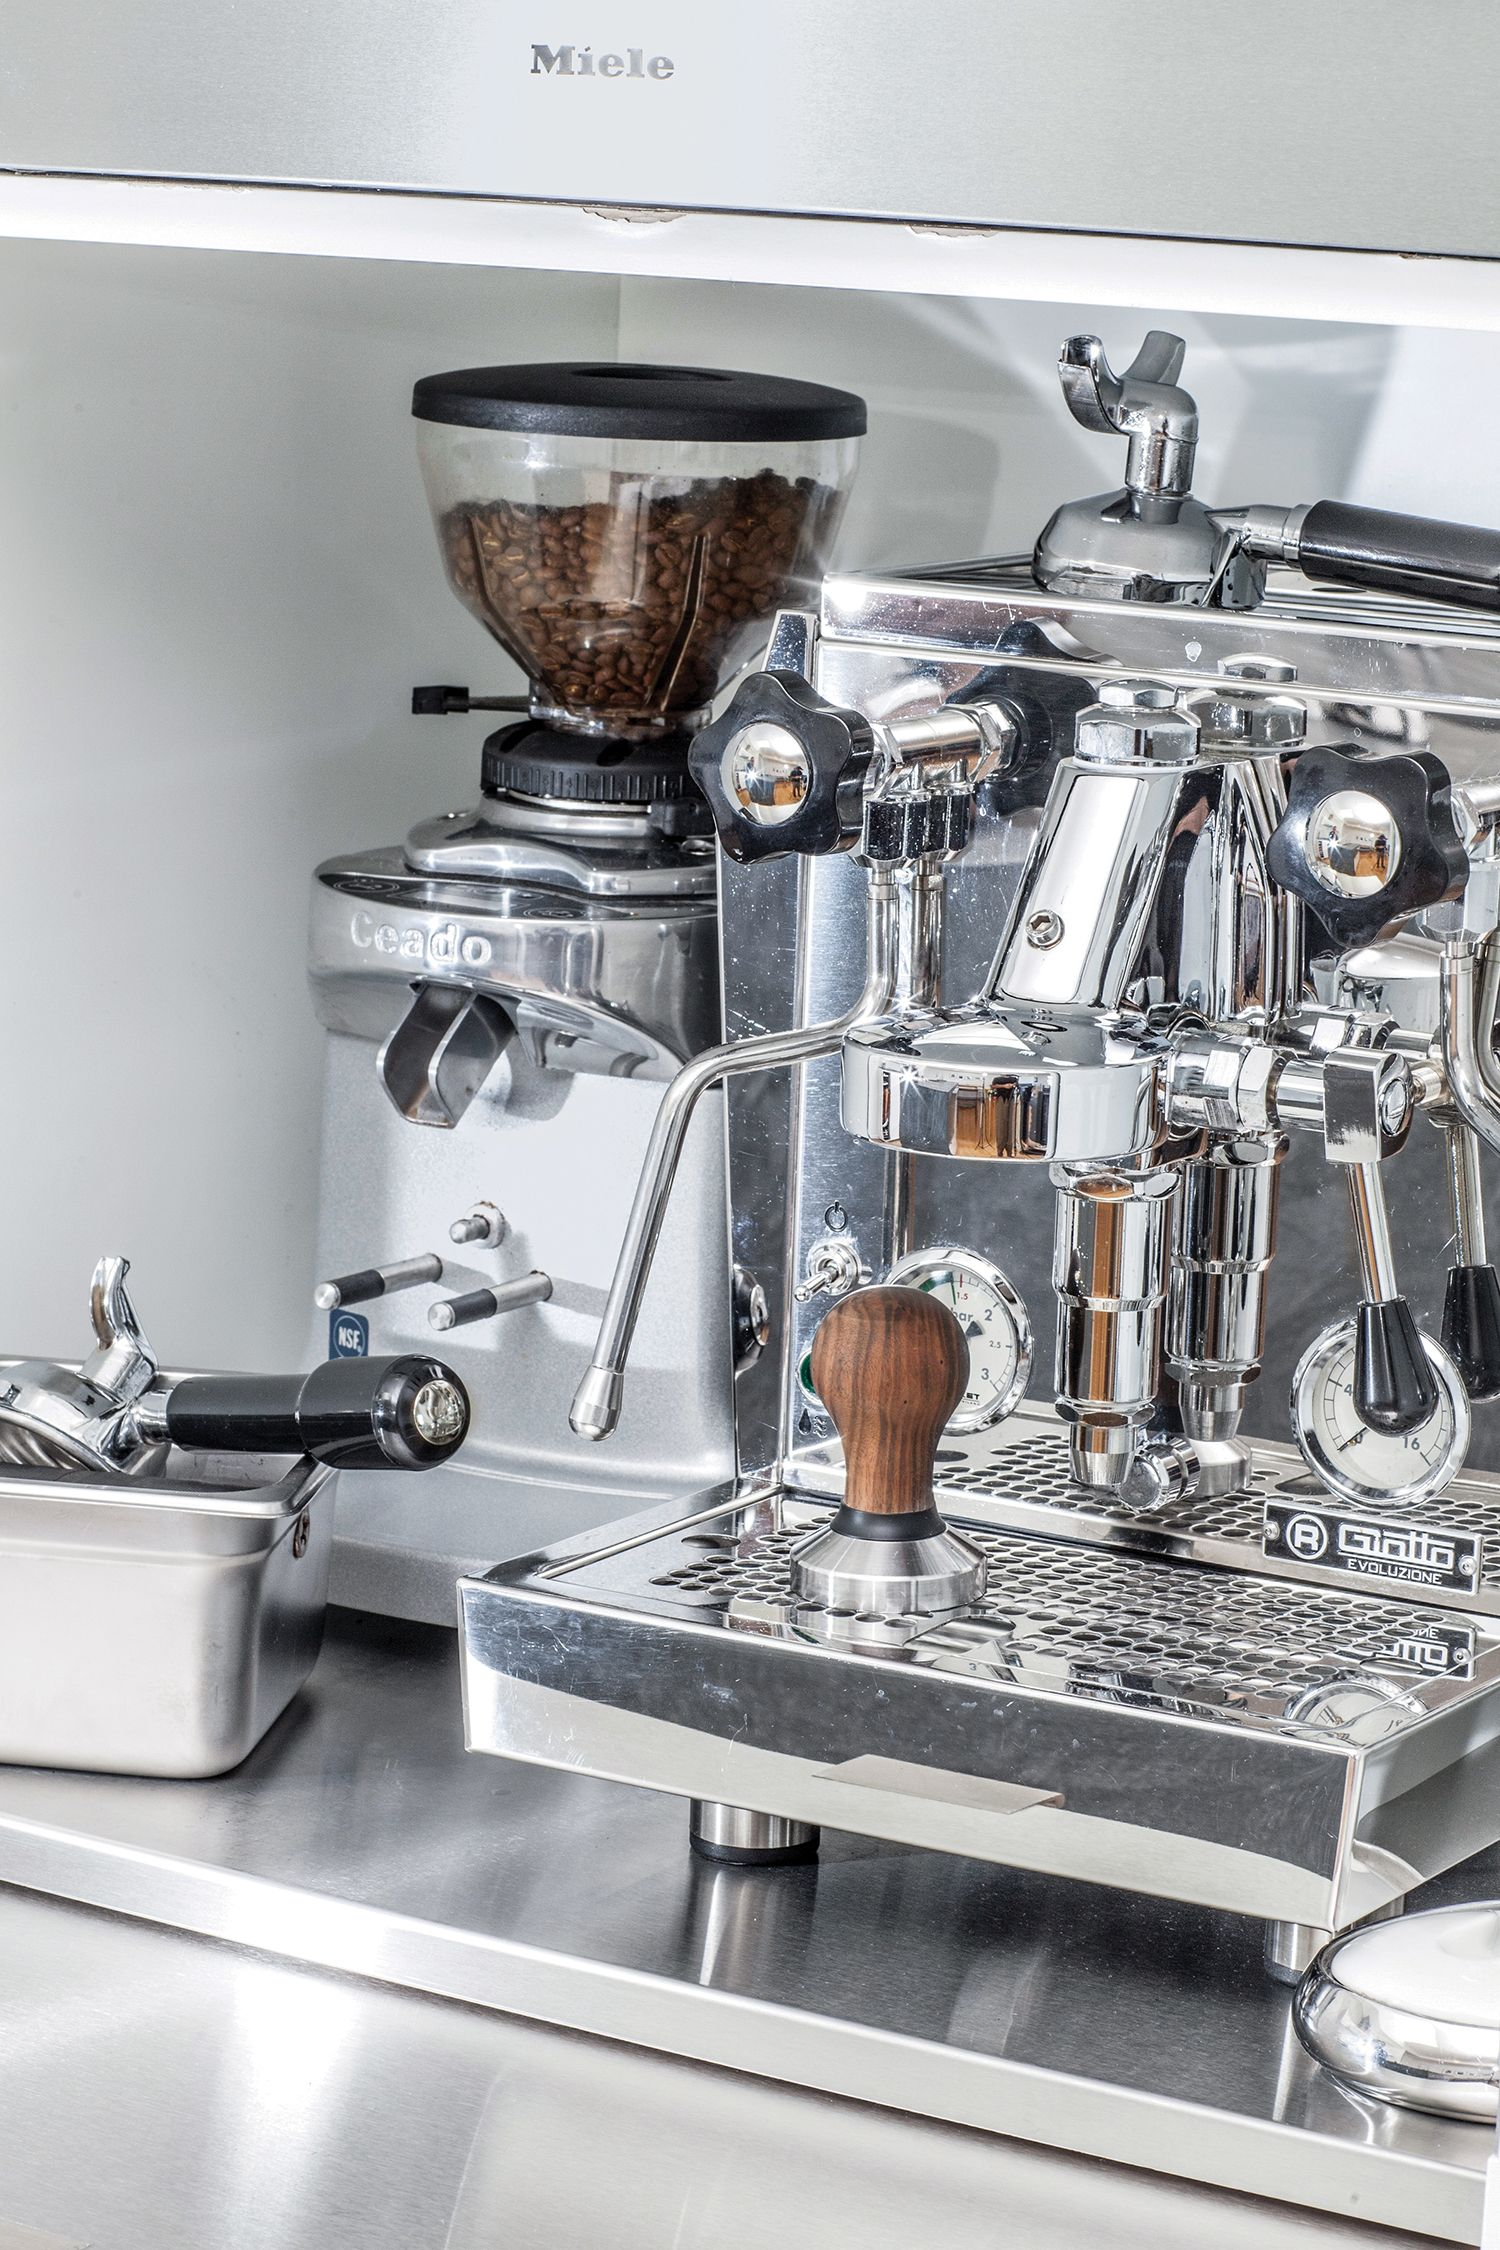 The Coffee Station Features A Professional Grade Rocket Espresso Machine.  Jang And King Designed